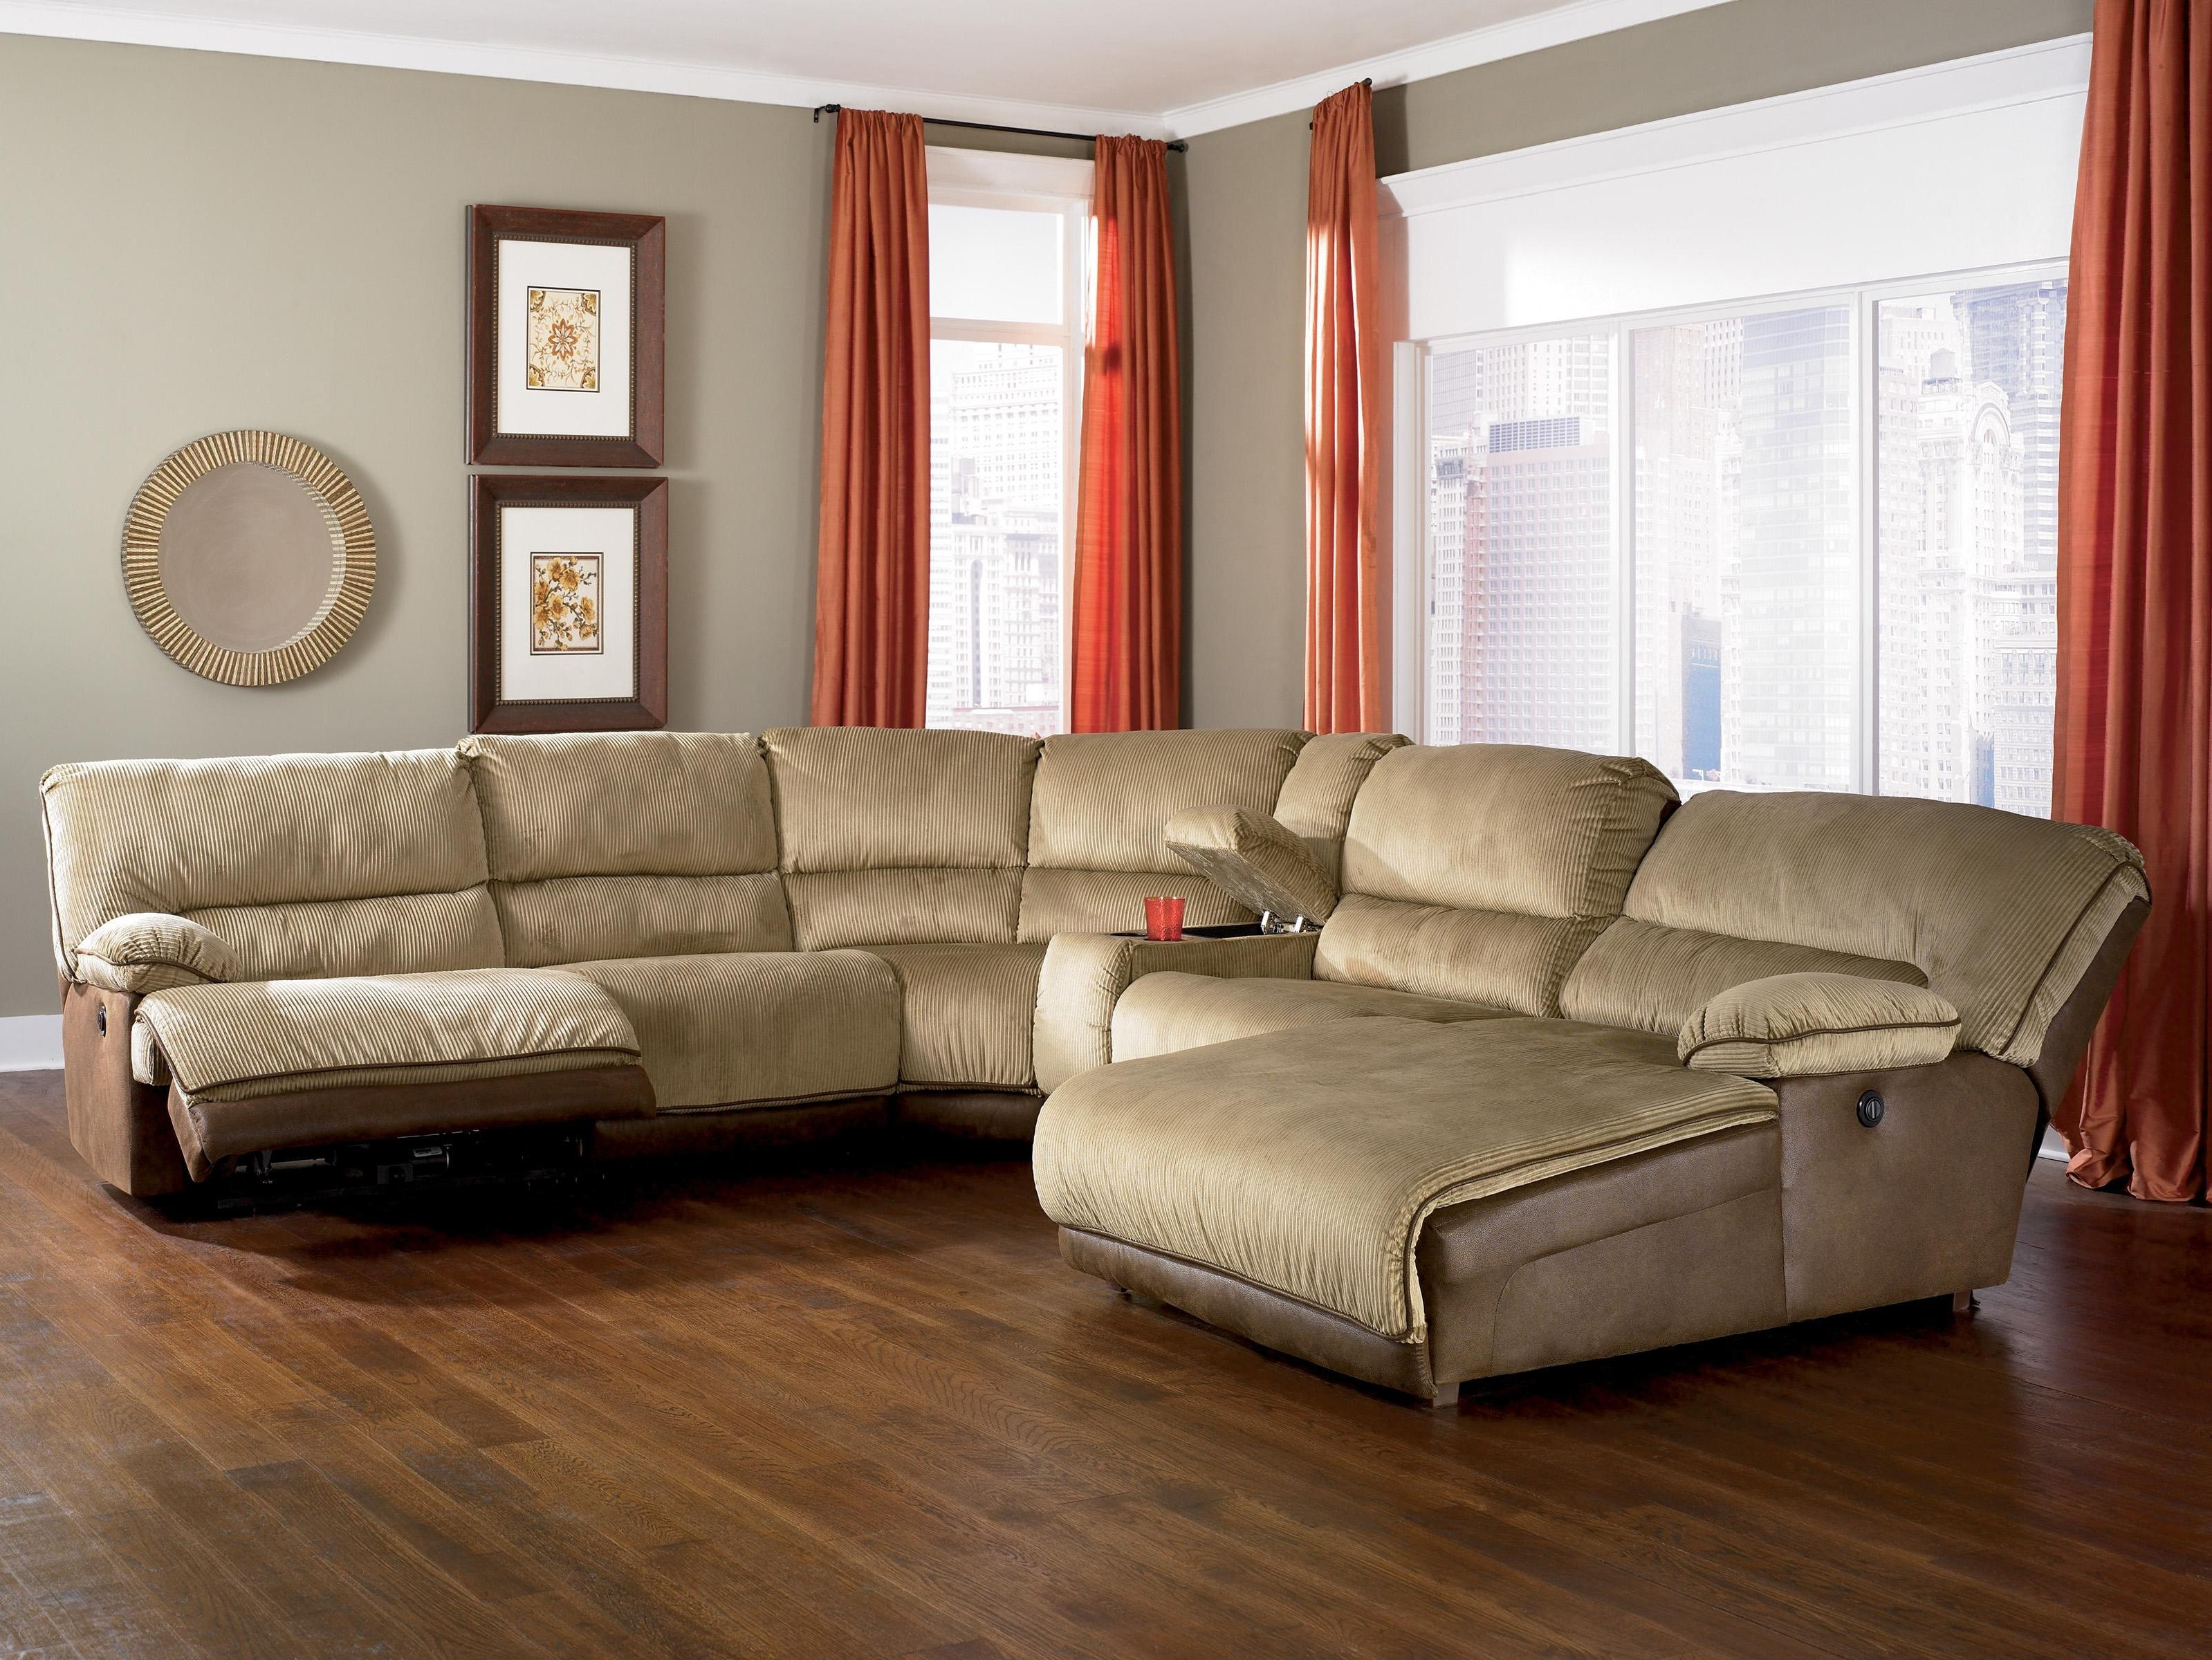 Widely Used Furniture : Sectional Sofa $500 Recliner With Lift Corner Couch Within Jamaica Sectional Sofas (View 20 of 20)